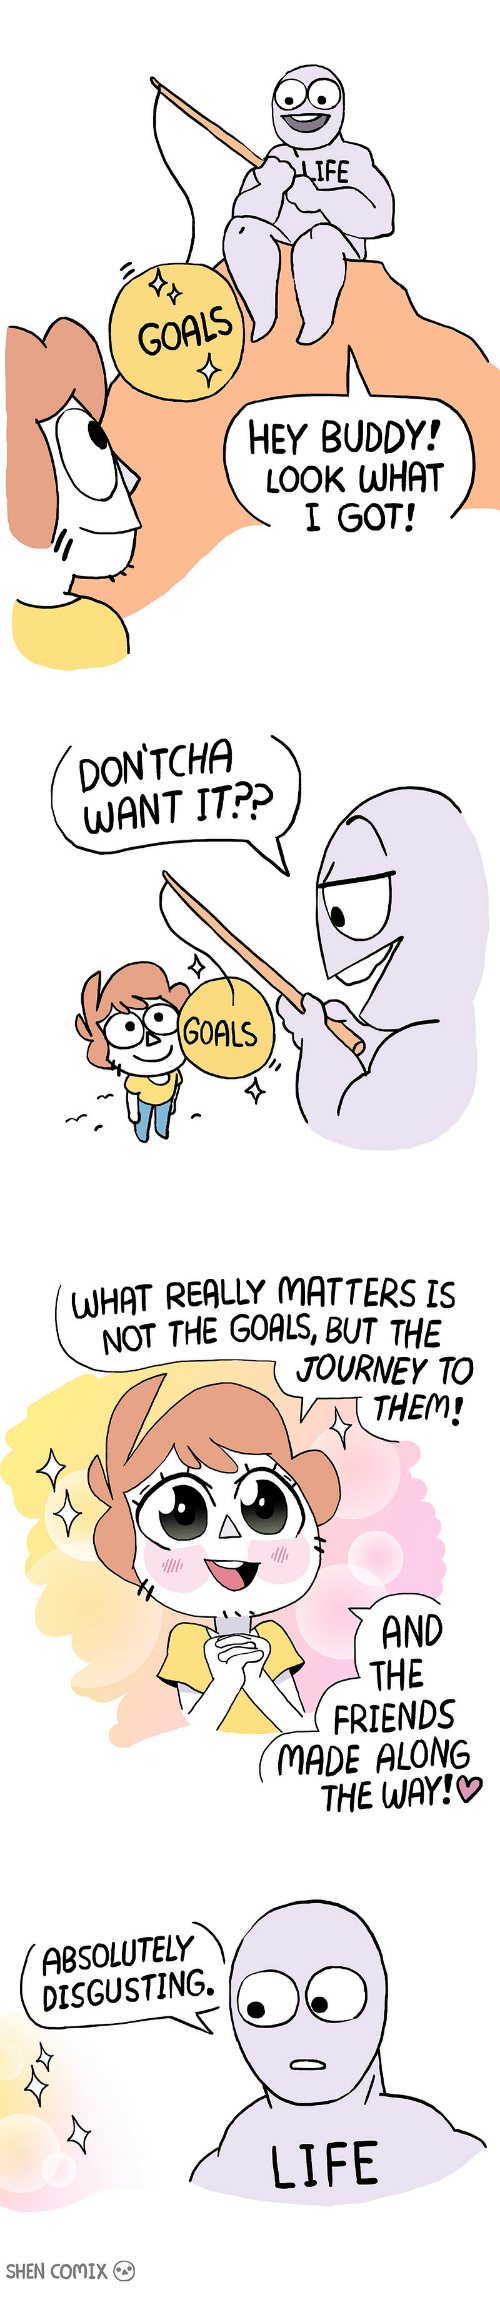 absolutely disgusting: IFE  GOALS  HEY BUDDY!  LOOK WHAT  I GOT!   DONTCHA  WANT IT?>  S GOALS   WHAT REALLY MATTERS IS  NOT THE GOALS, BUT THE  JOURNEY TO  / THEM!  AND  THE  FRIENDS  MADE ALONG  THE WAY!O   ABSOLUTELY  DISGUSTING. O  LIFE  SHEN CoMIX